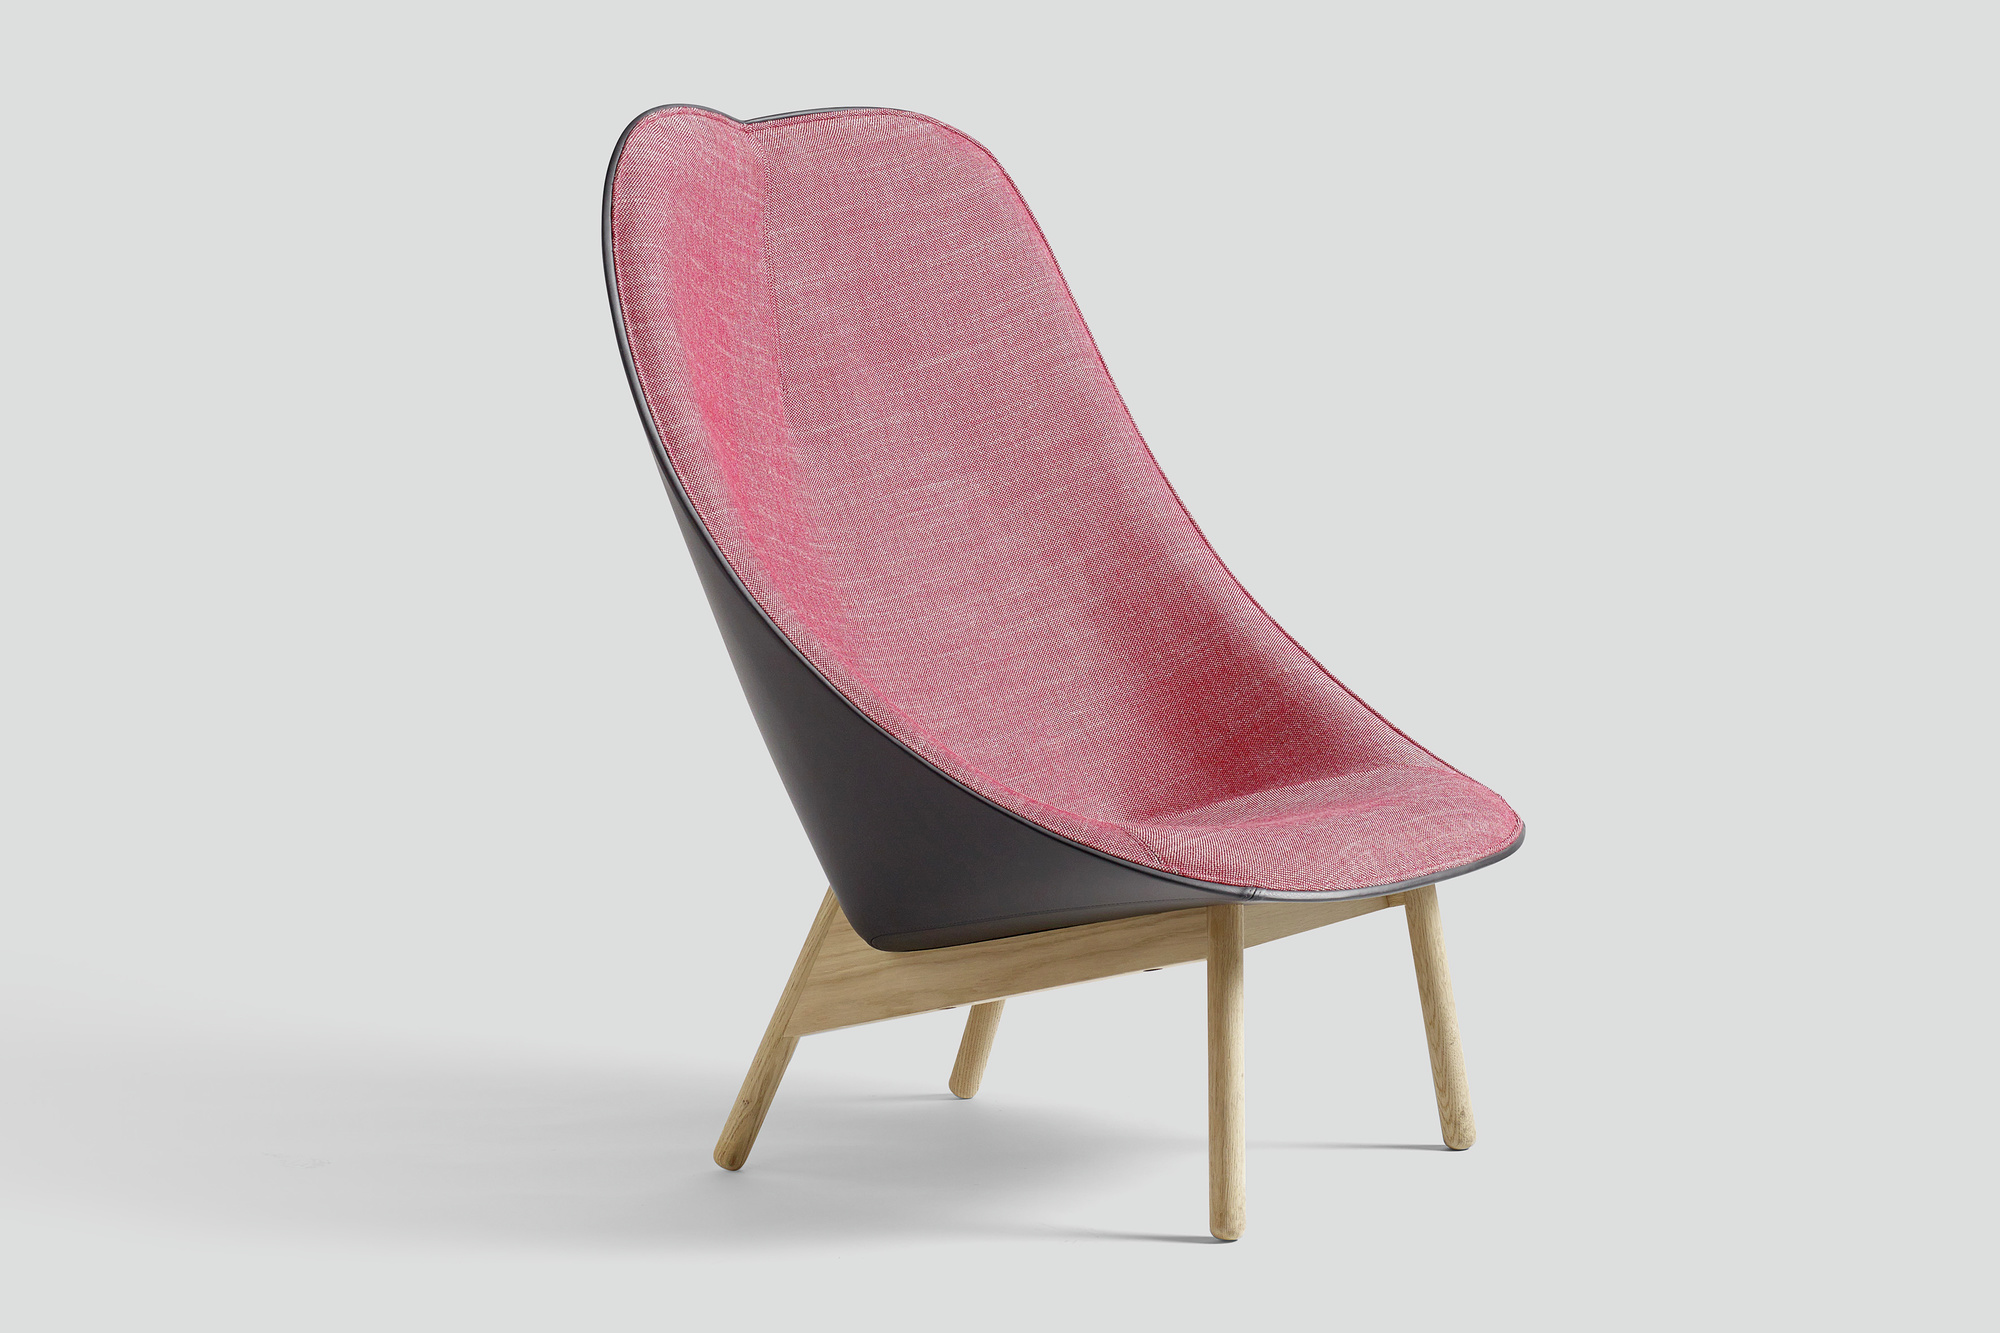 inredningshj lpen hay uchiwa lounge chair by doshi levien. Black Bedroom Furniture Sets. Home Design Ideas